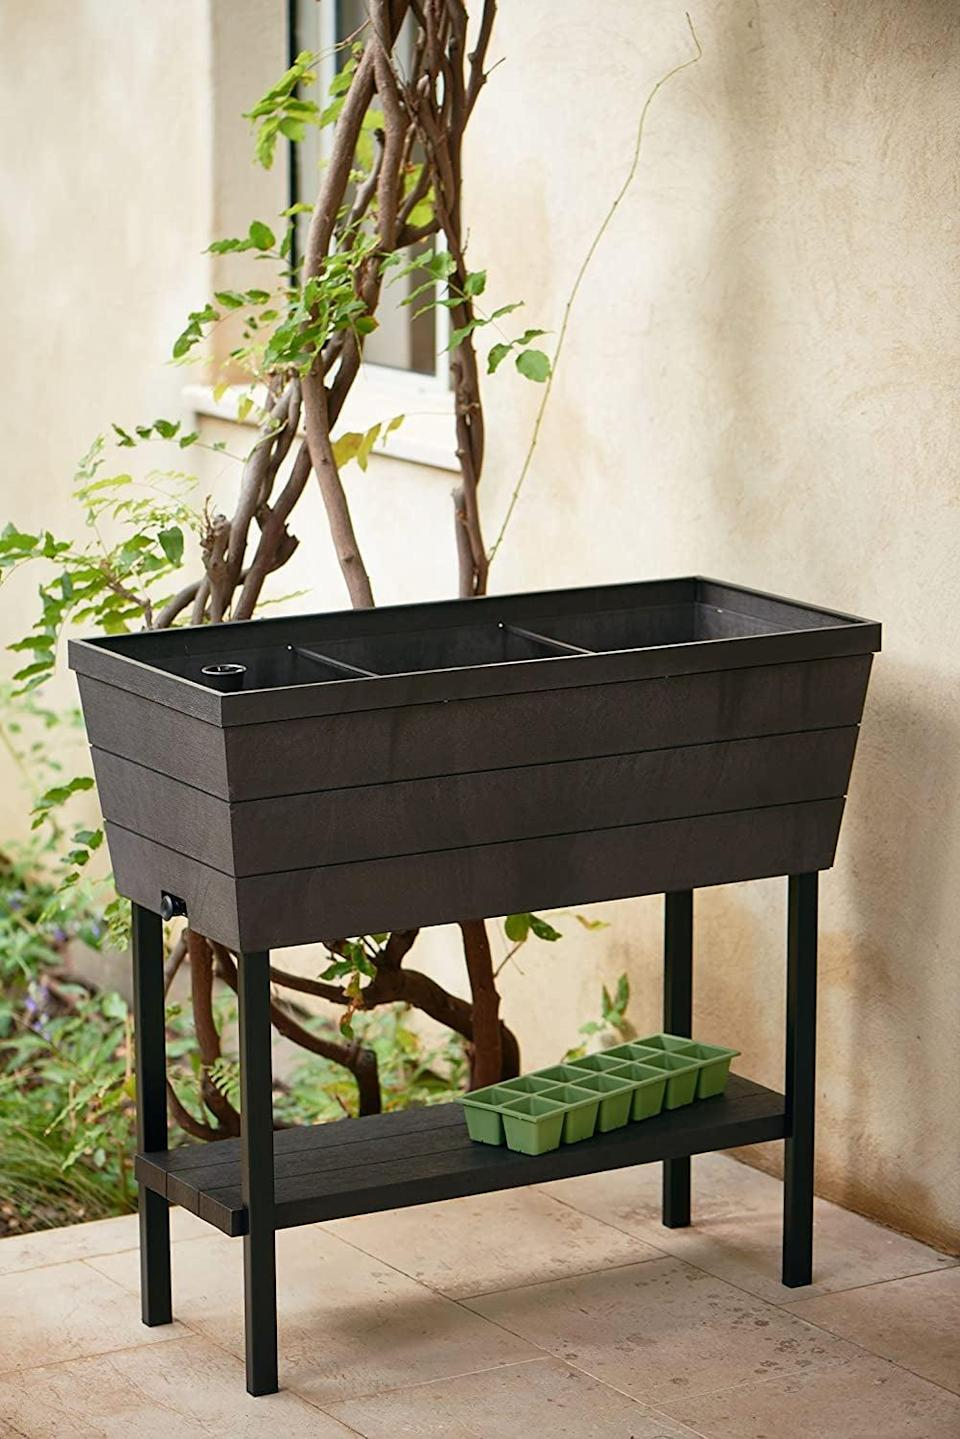 <p>If you want to start a garden and don't know where to start or just have limited space, you'll love this <span>Keter Urban Bloomer</span> ($89). It's a 12.7-gallon raised garden bed that has a self-watering planter box, and a drainage plug. It has an easy to read water gauge that indicates when plants need additional moisture, a full watering system that includes a reservoir to prevent root decay and over watering, and it's easy to assemble. It's perfect as an herb garden or balcony planter.</p>